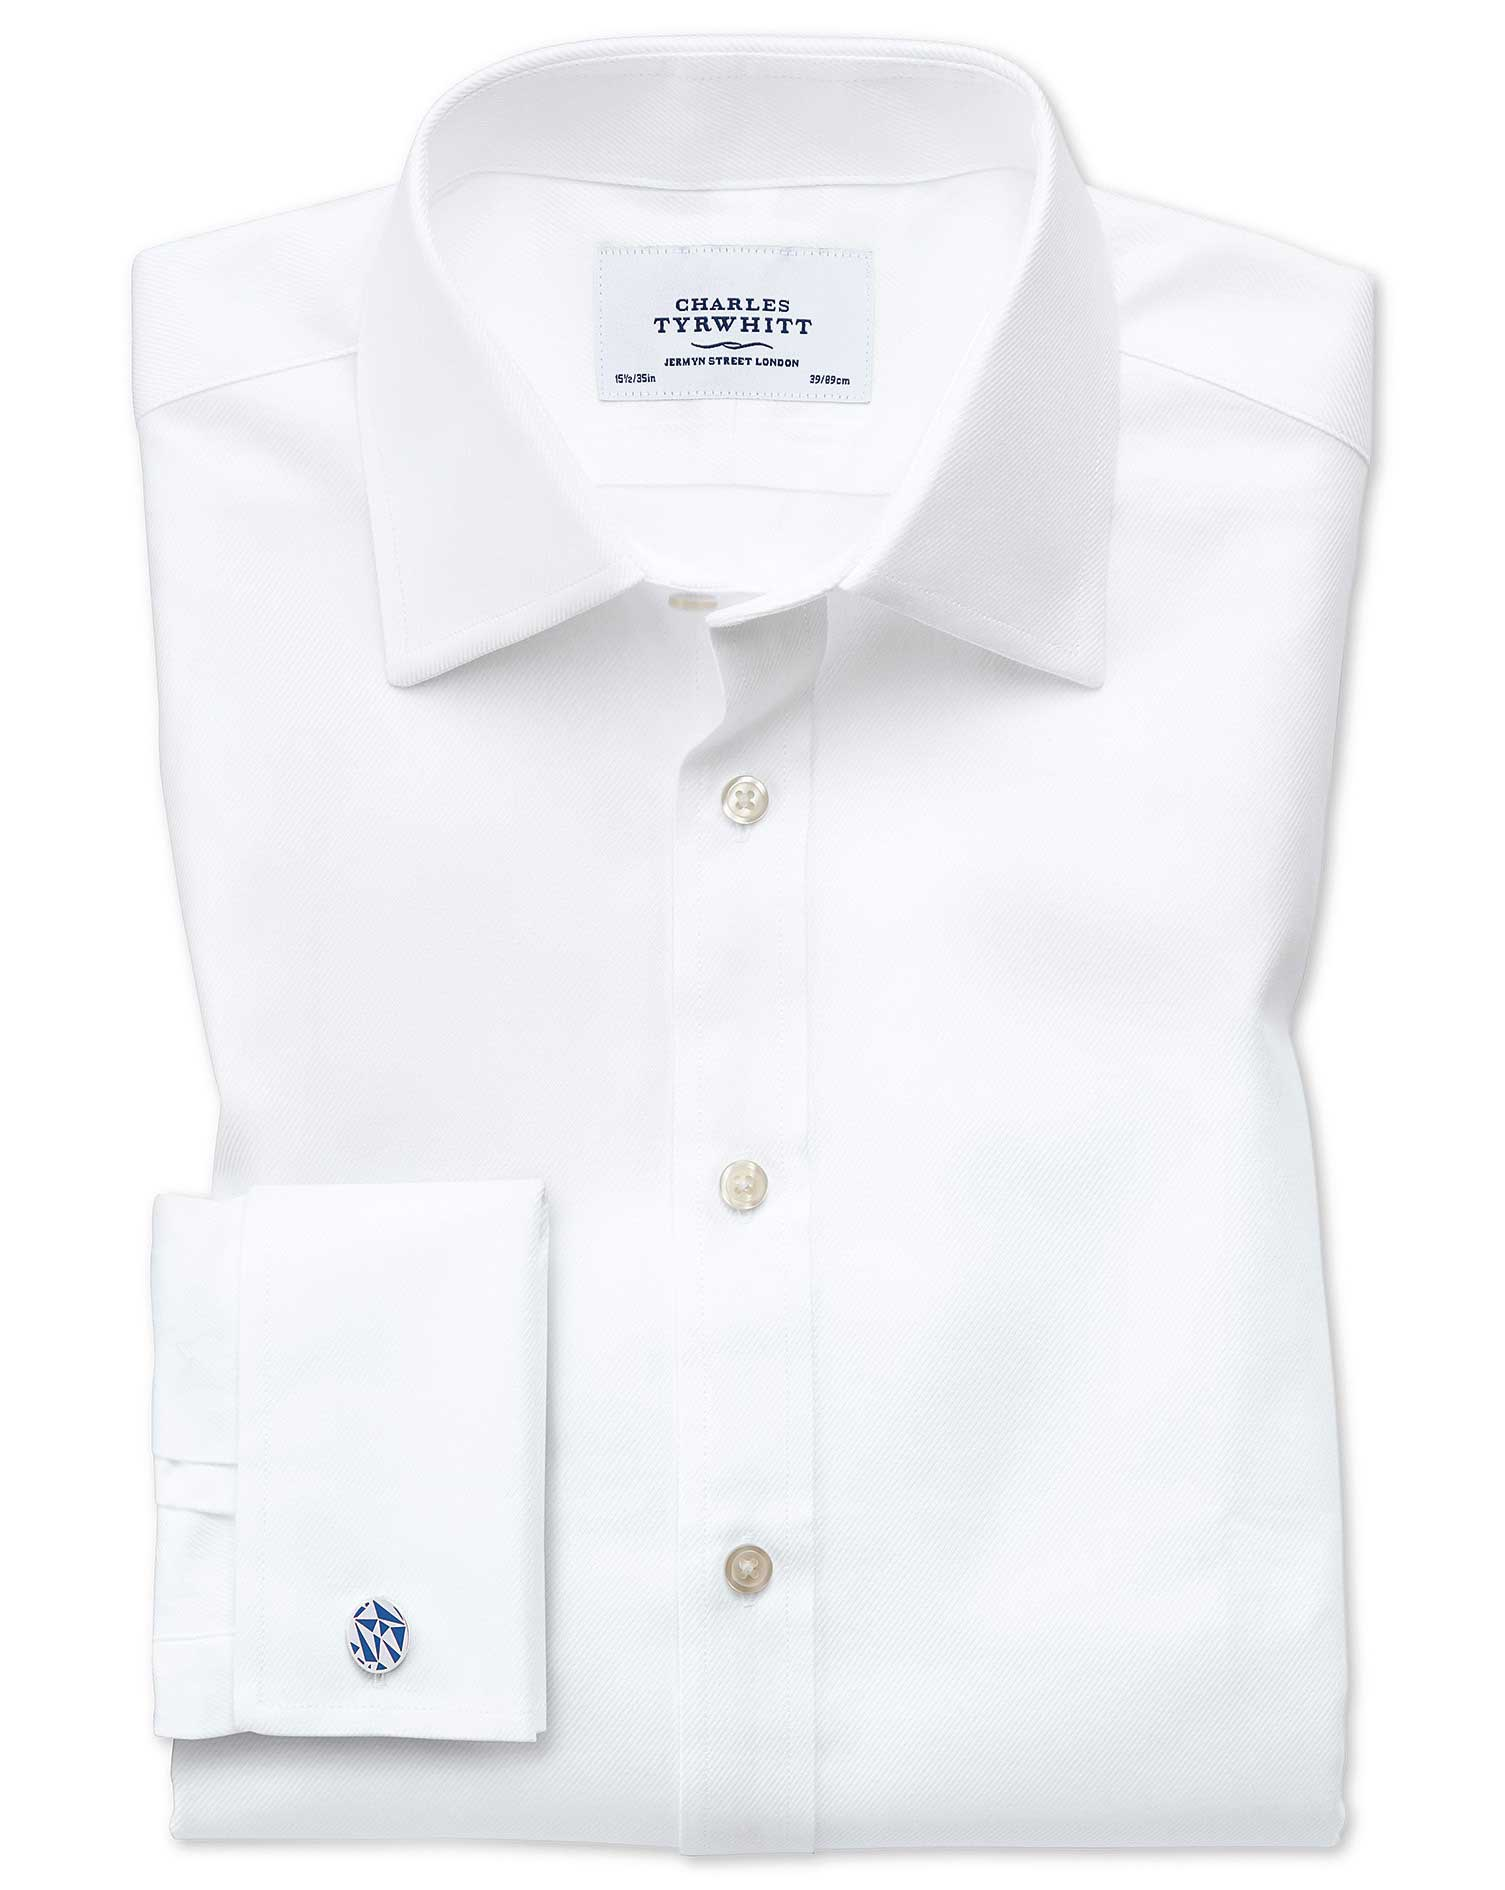 Slim Fit Egyptian Cotton Cavalry Twill White Formal Shirt Double Cuff Size 15/35 by Charles Tyrwhitt